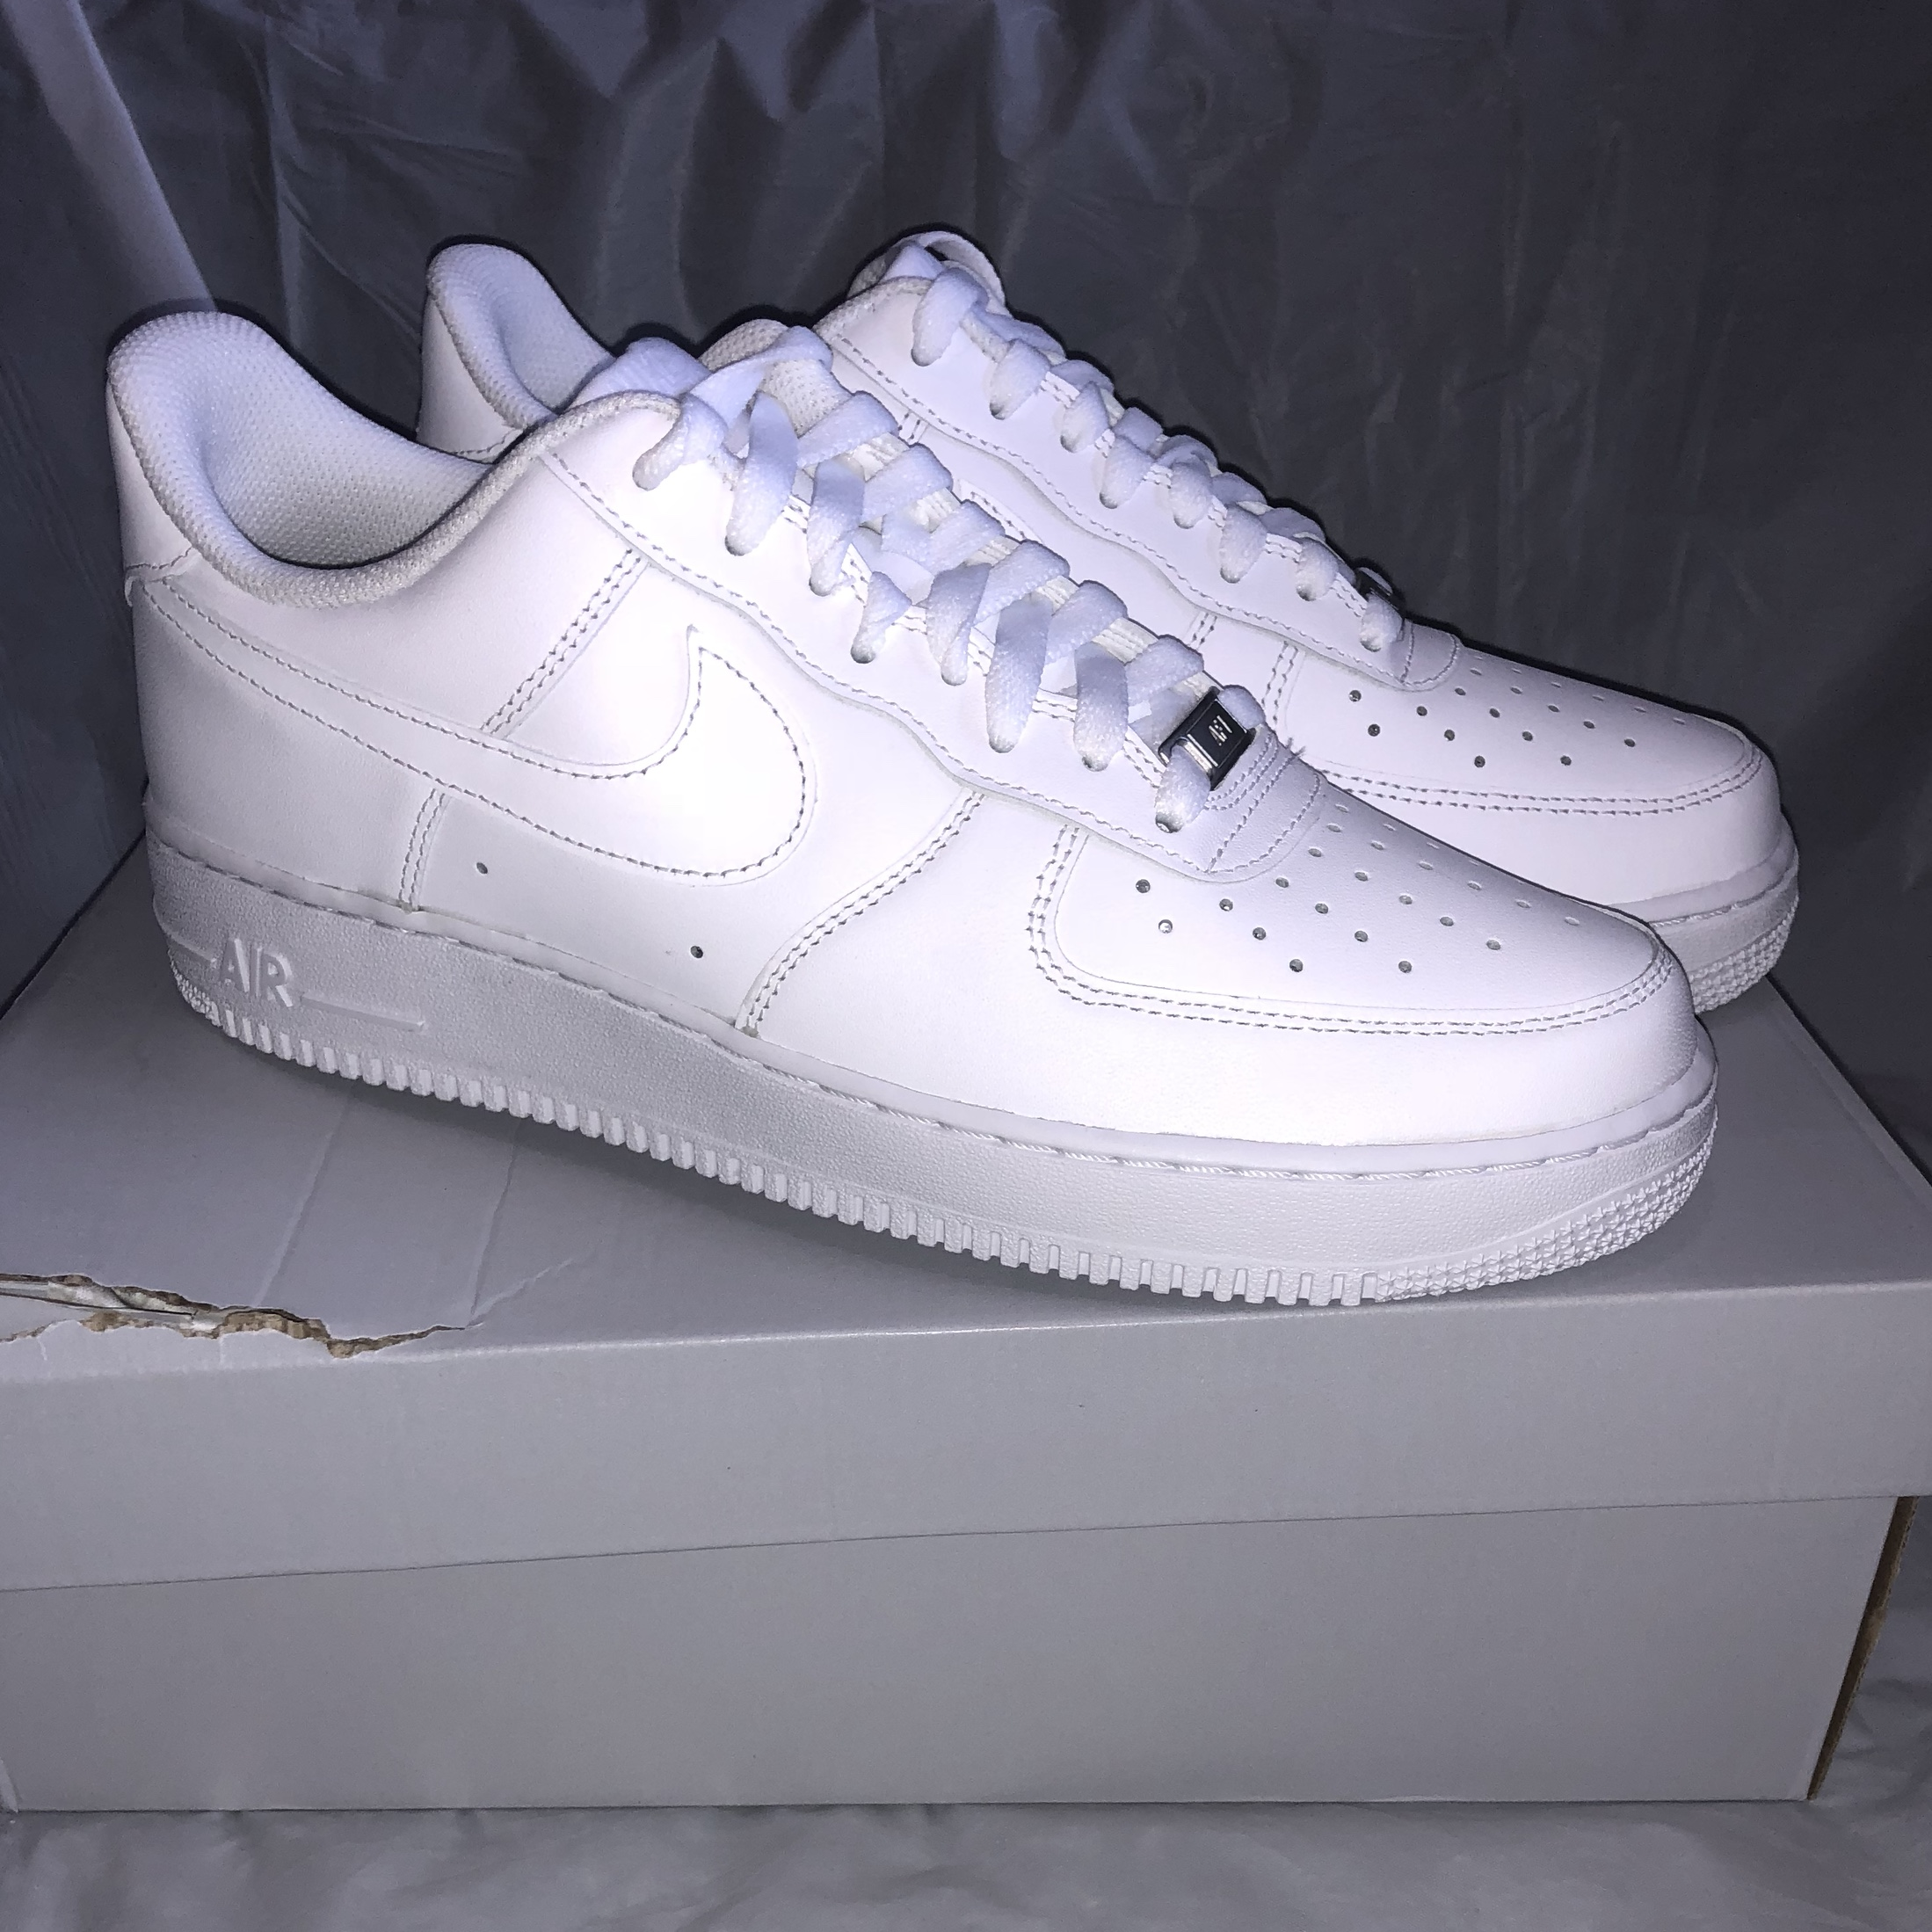 Nike Air Force 1 White, UK Men's Size 8, will send...